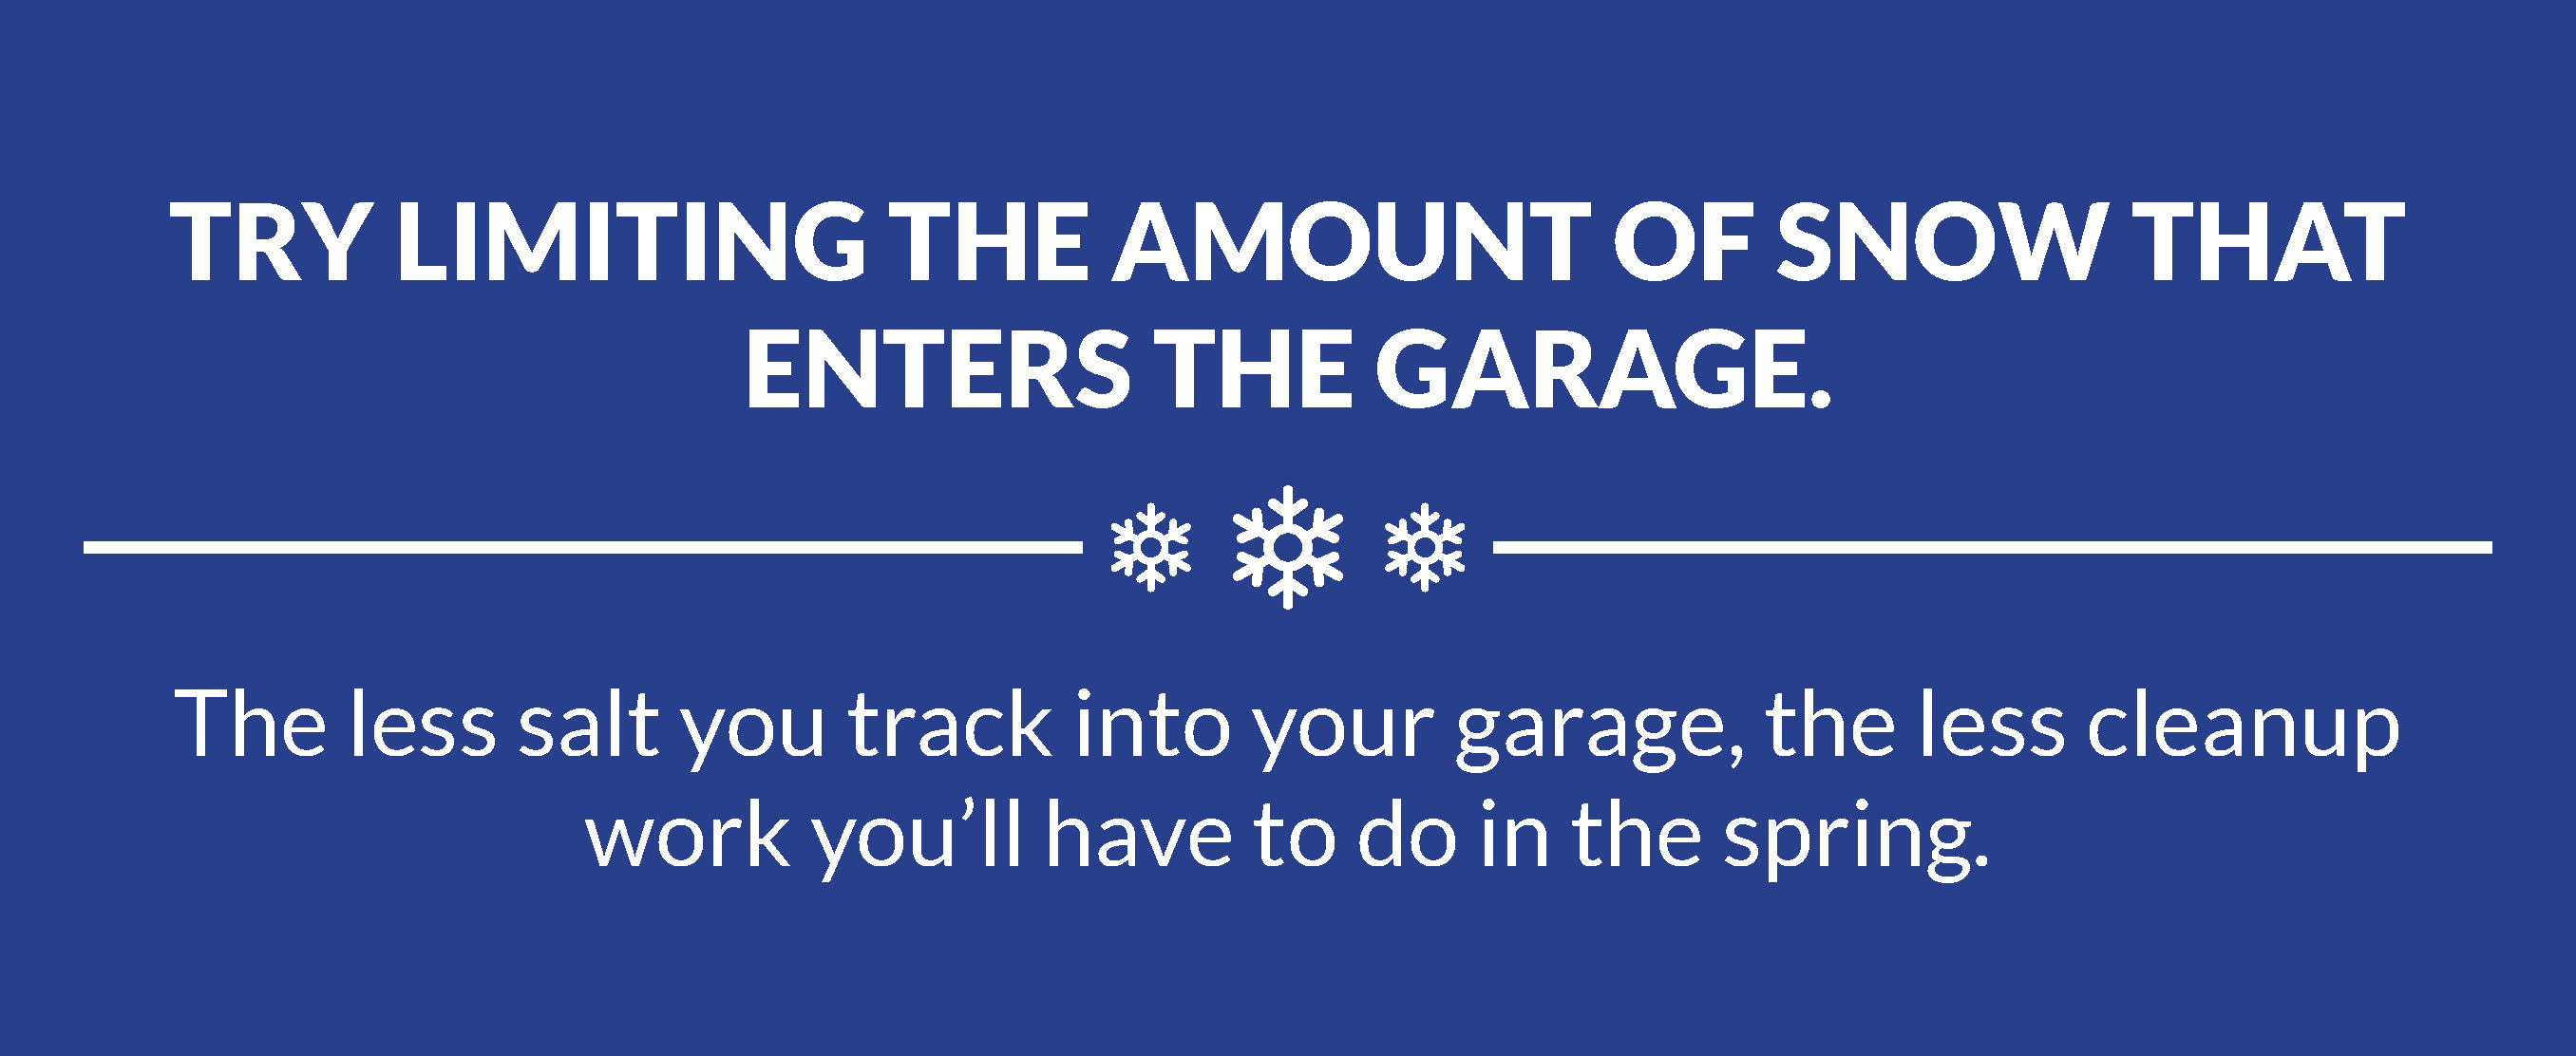 limit-snow-in-garage